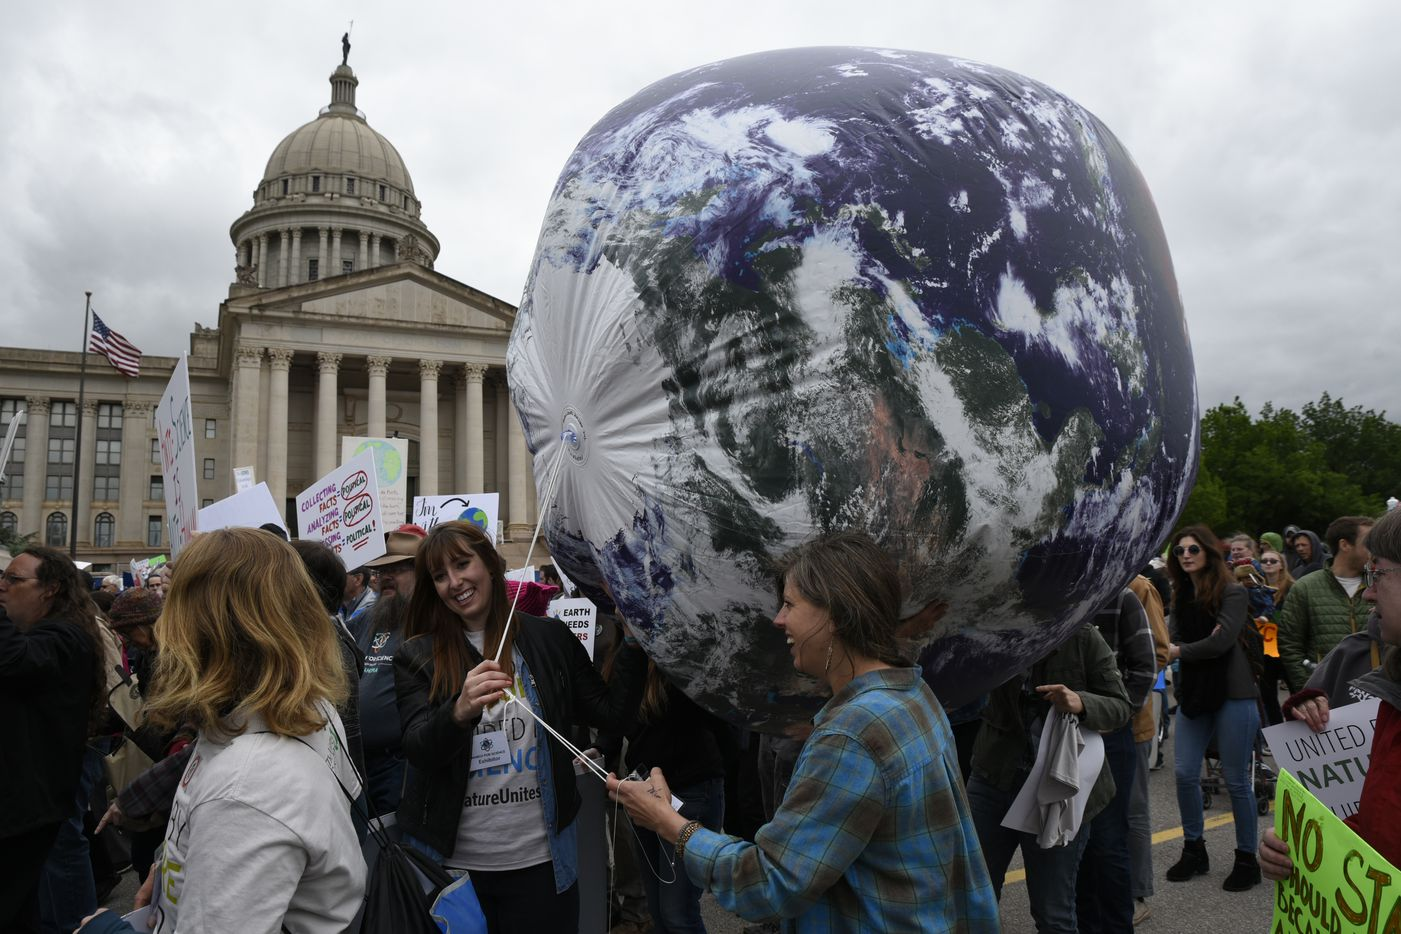 Members of the Oklahoma Nature Conservancy carry an inflatable globe during the March For Science at the Oklahoma State Capitol in Oklahoma City, April 22, 2017. Thousands of scientists and science advocates demonstrated in Washington and in smaller events around the world to support, defend and celebrate the scientific enterprise.  (Nick Oxford/The New York Times)